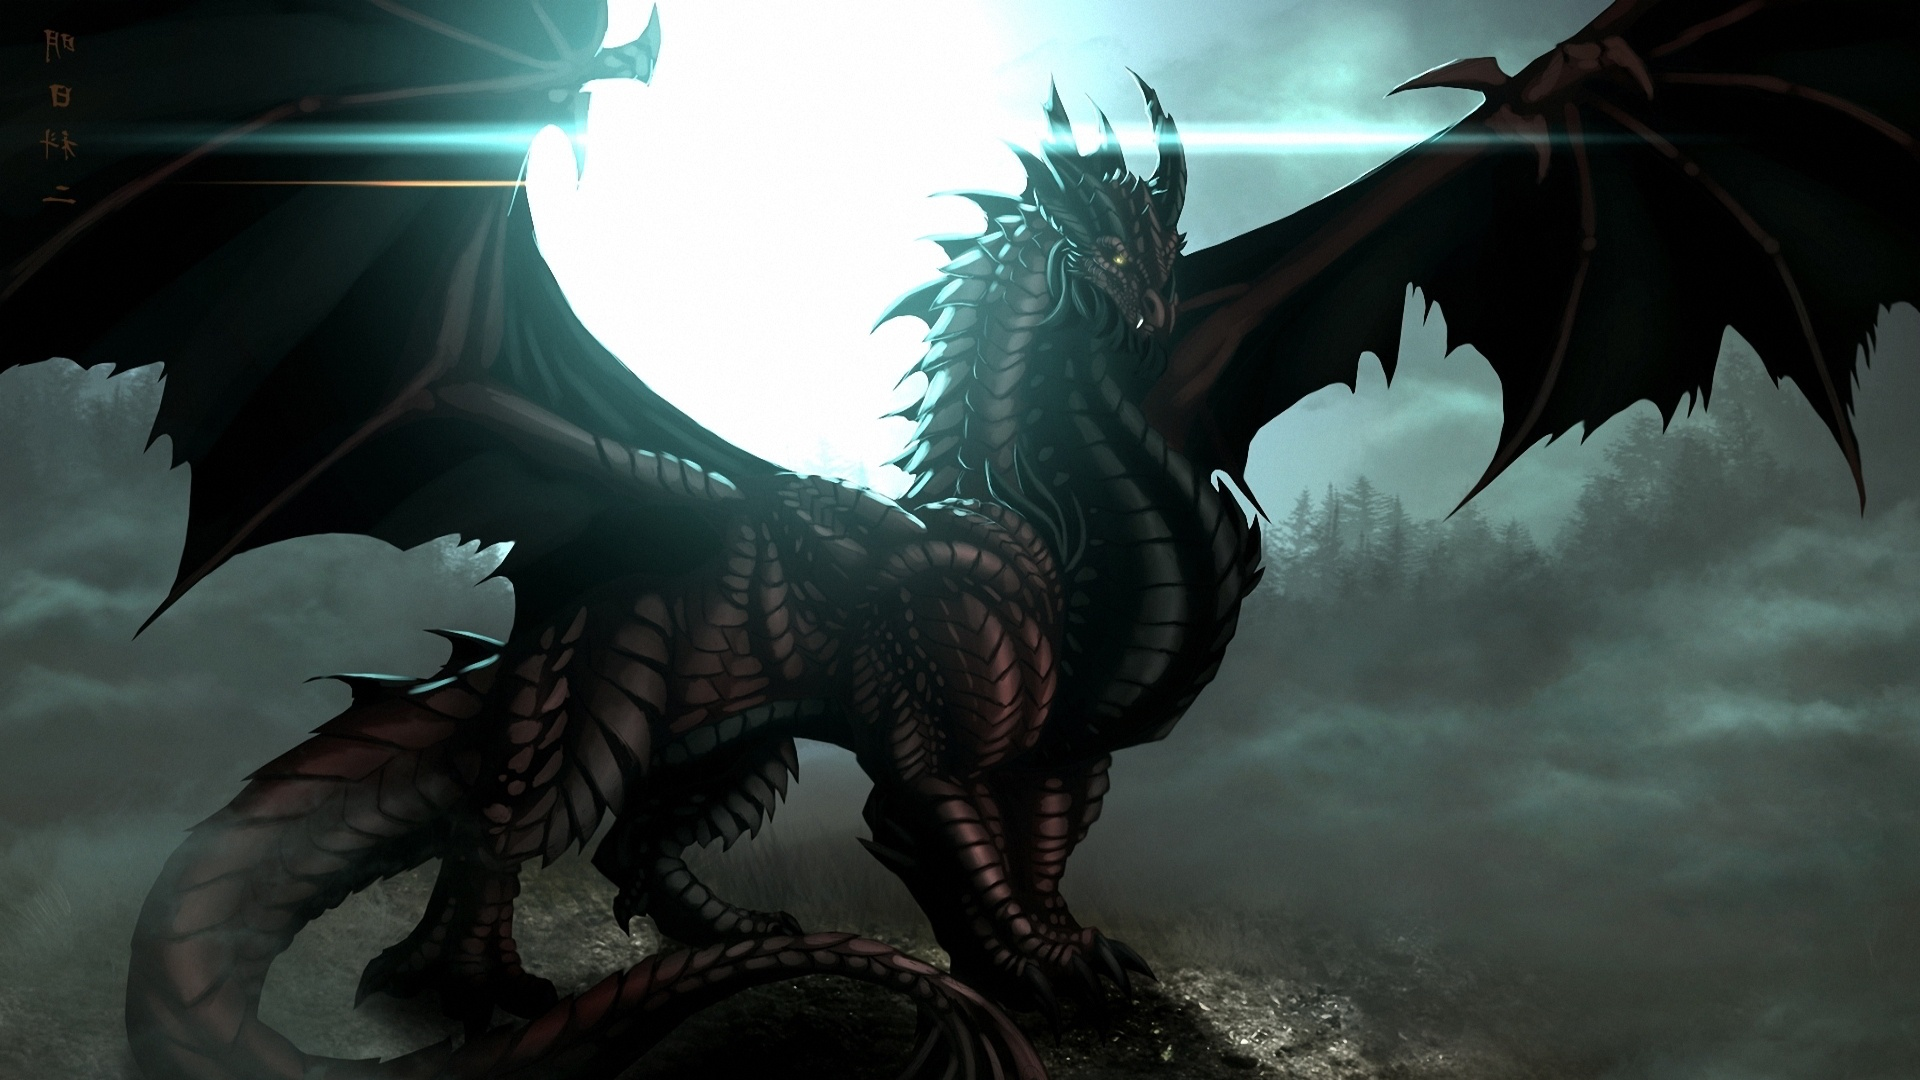 Fantasy Black Dragon Wallpaper Hd 2